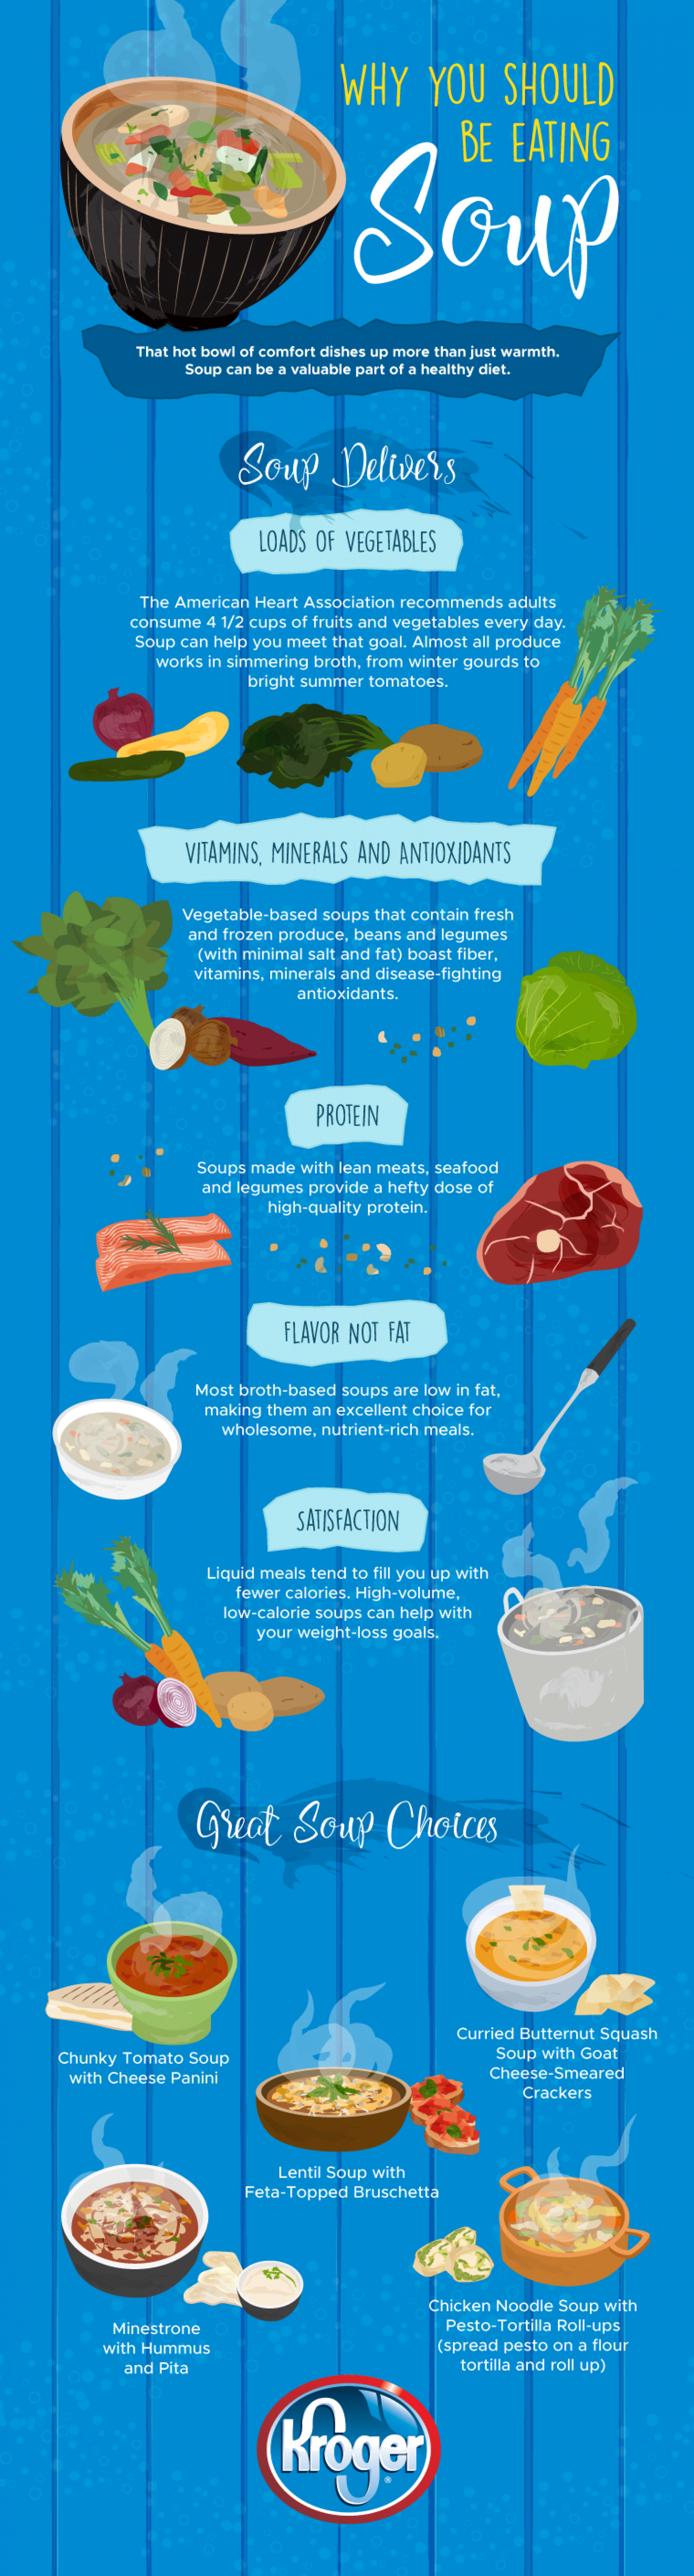 Why you should be eating SOUP Infographic